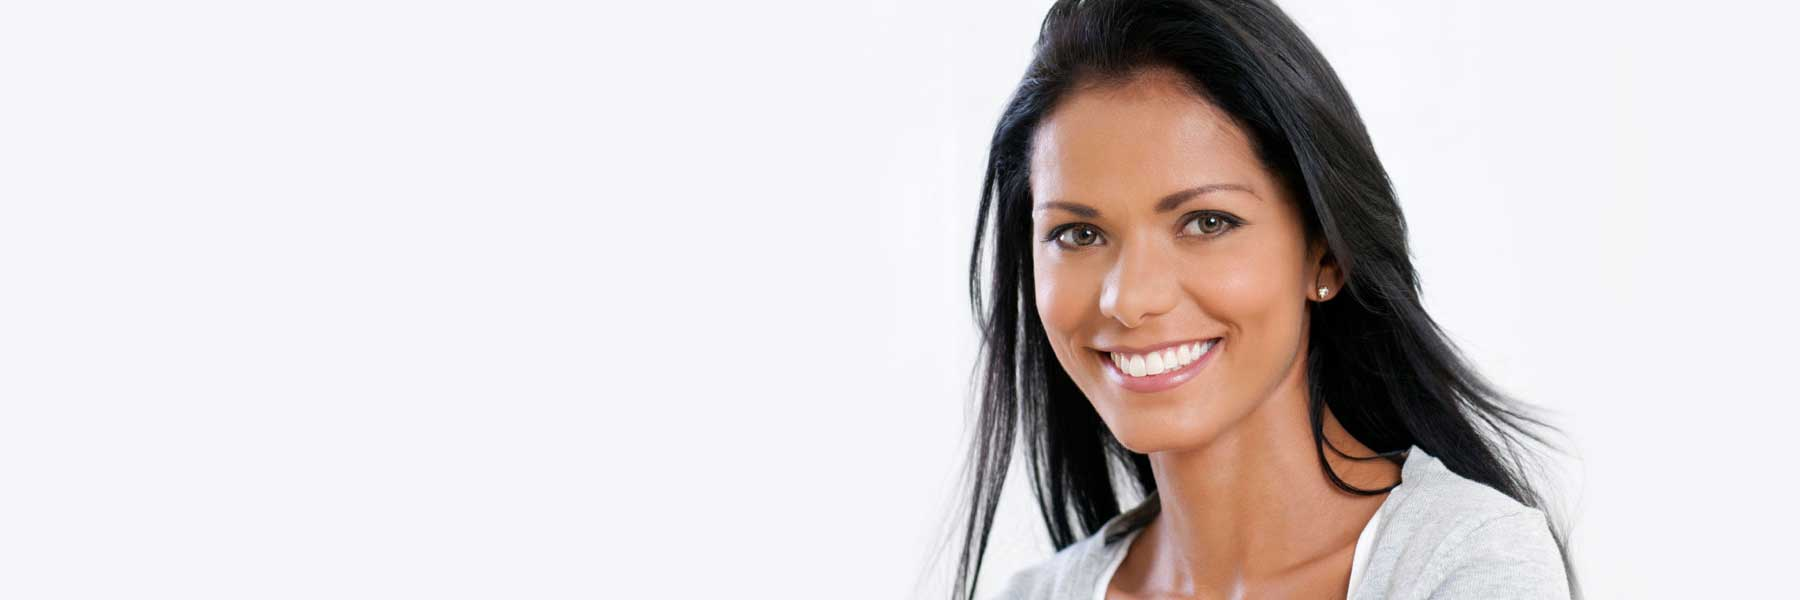 Cosmetic Dentistry banner image